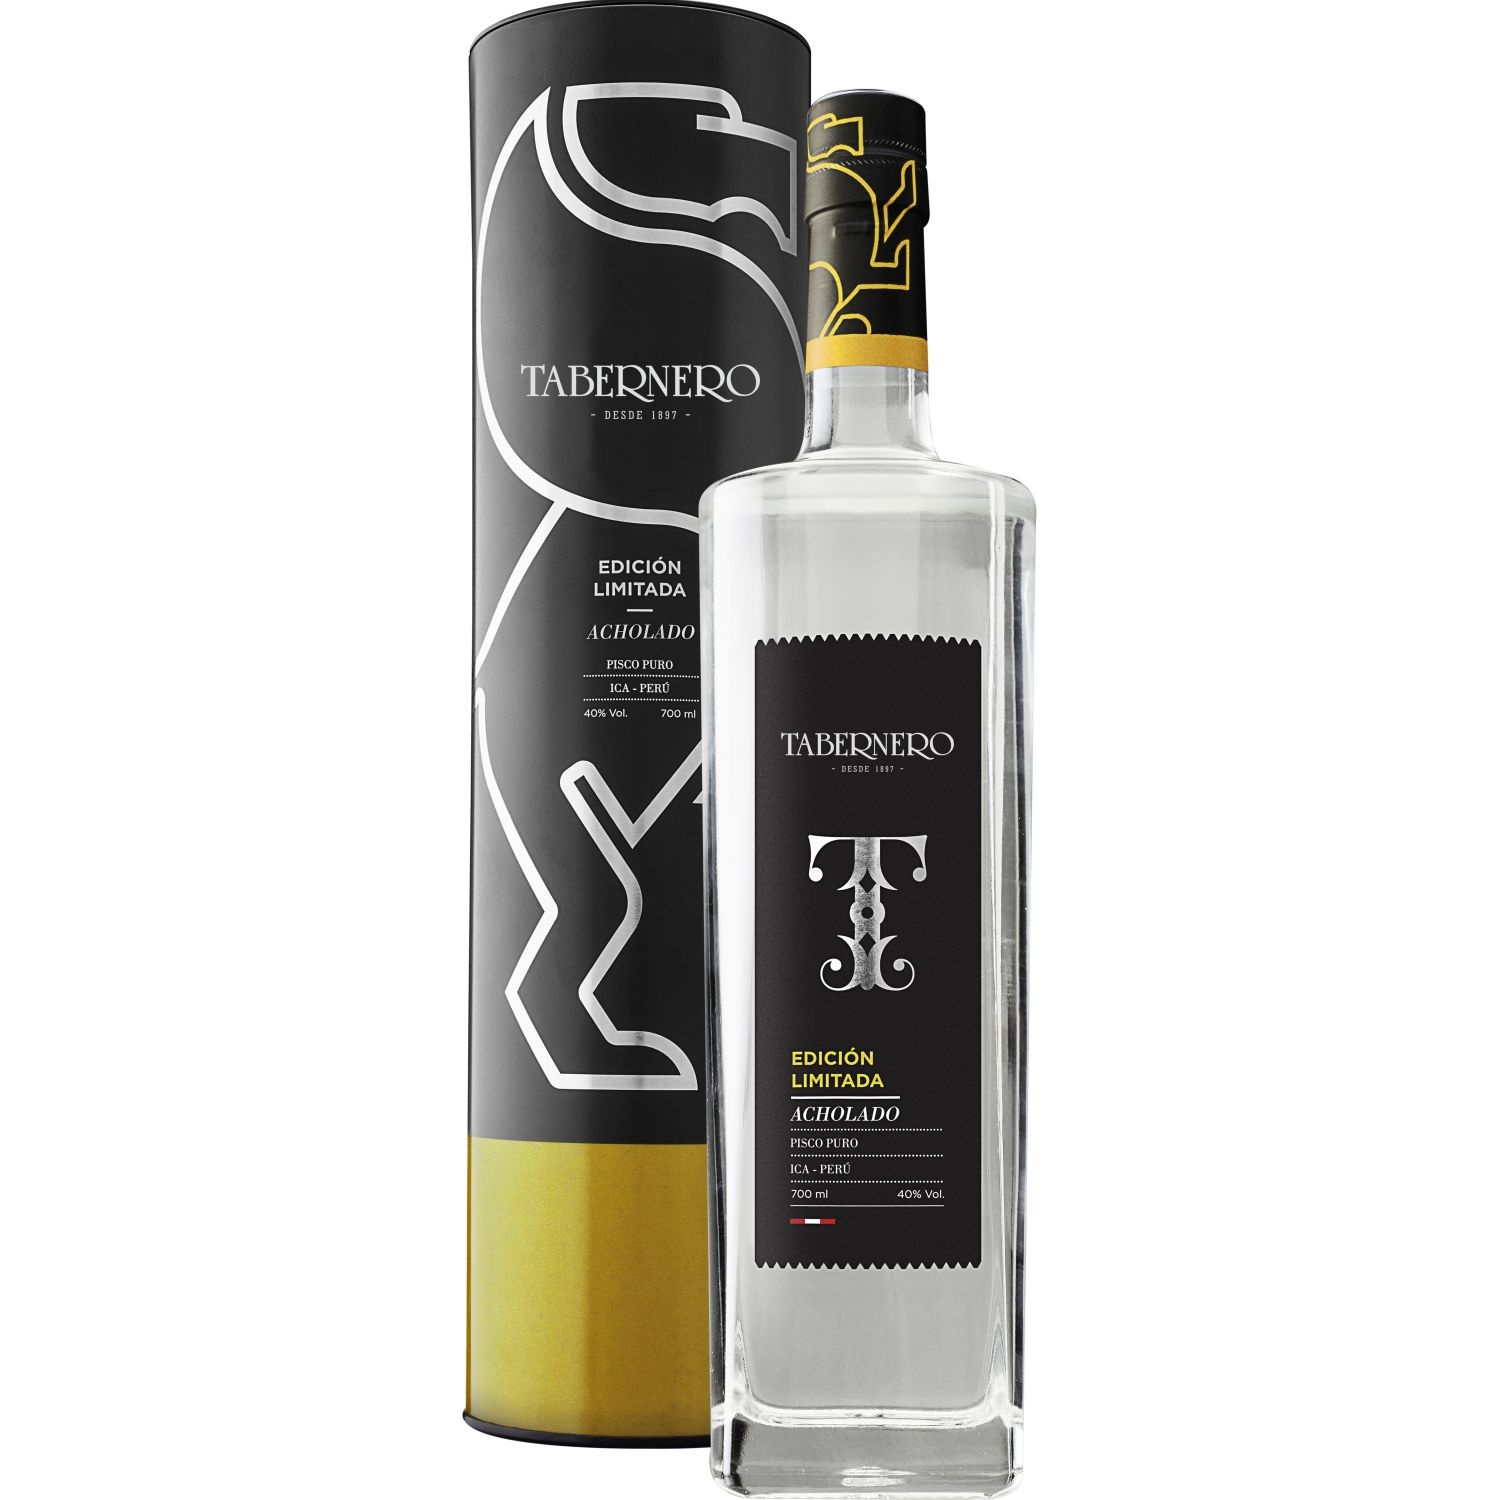 TABERNERO Edición Limitada Acholado 700ml SIN COLOR Brandy y aguardientes